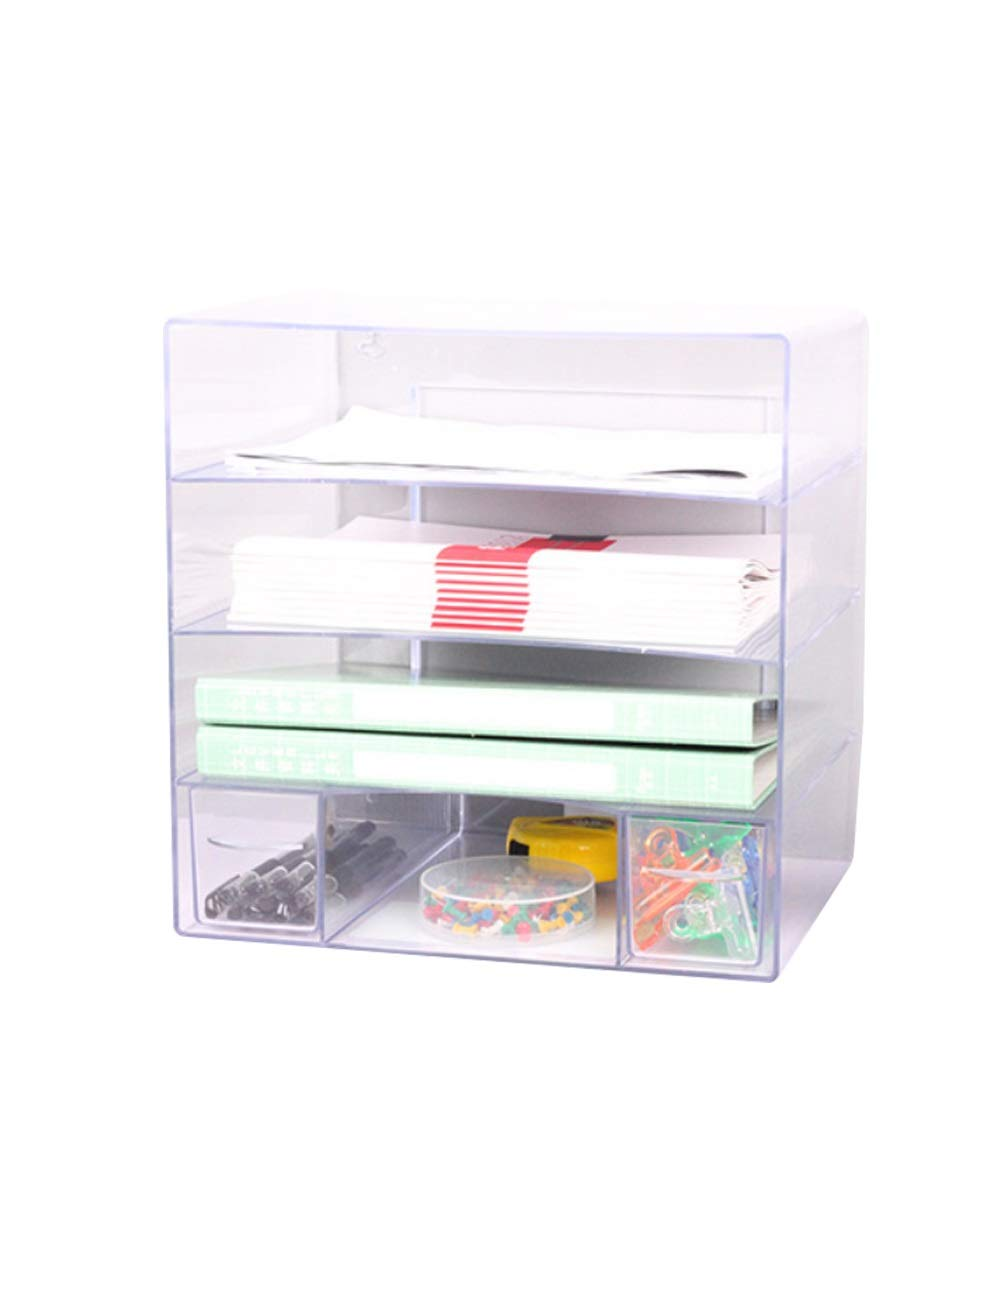 File Cabinet Office Desktop Cabinet 3 Drawers 25cm34cm34cm Plastic Safety Cabinet File Storage Cabinet Storage Box File Holder Filing cabinets